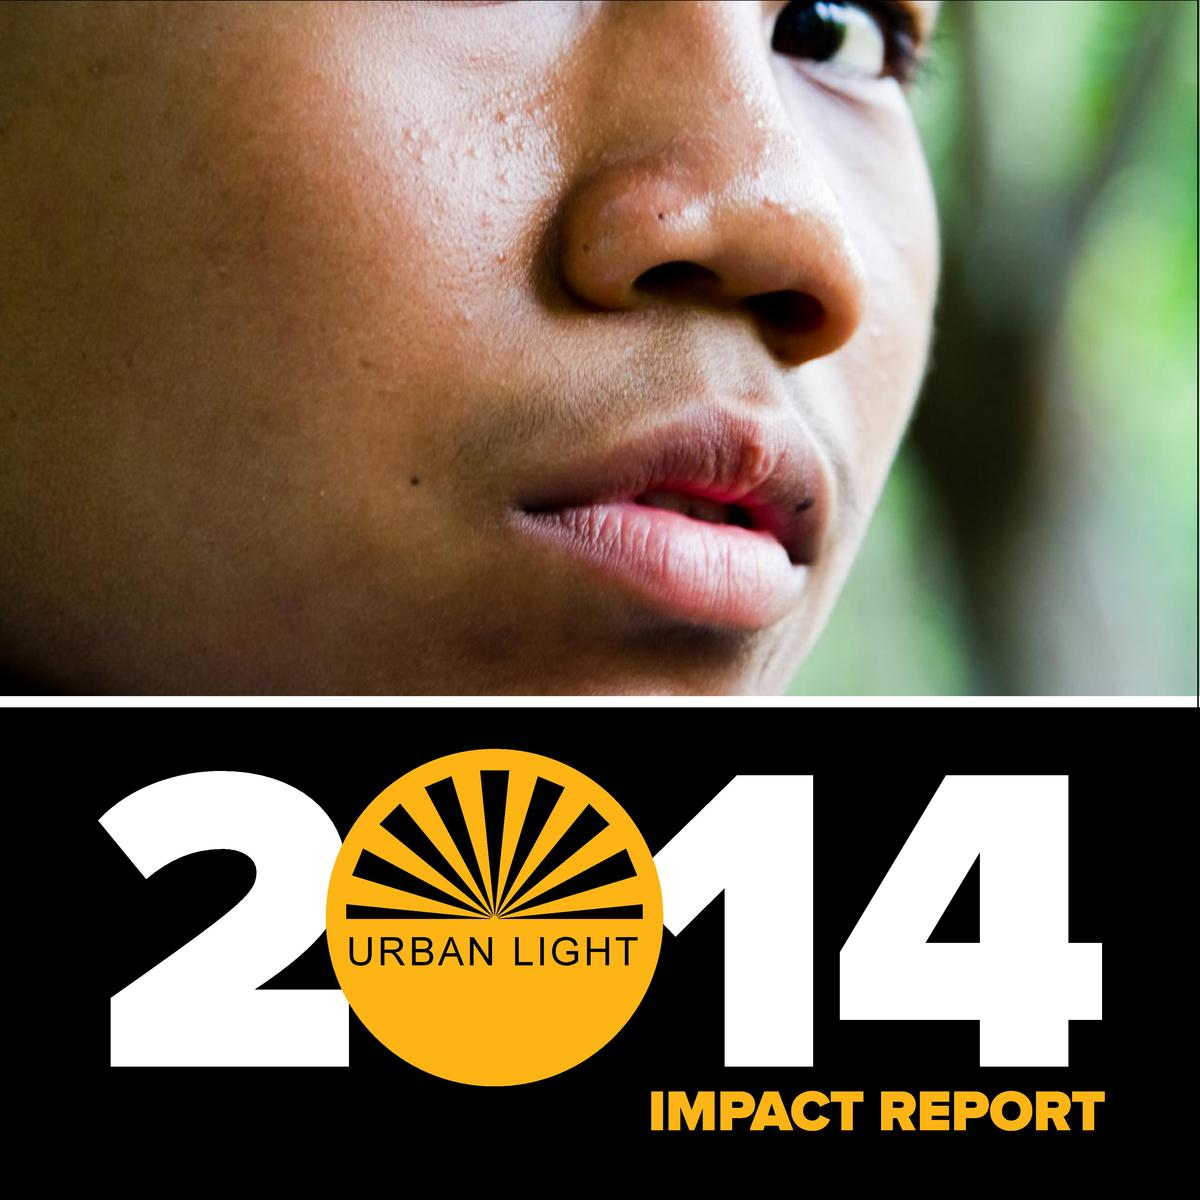 URBAN LIGHT  IMPACT REPORT